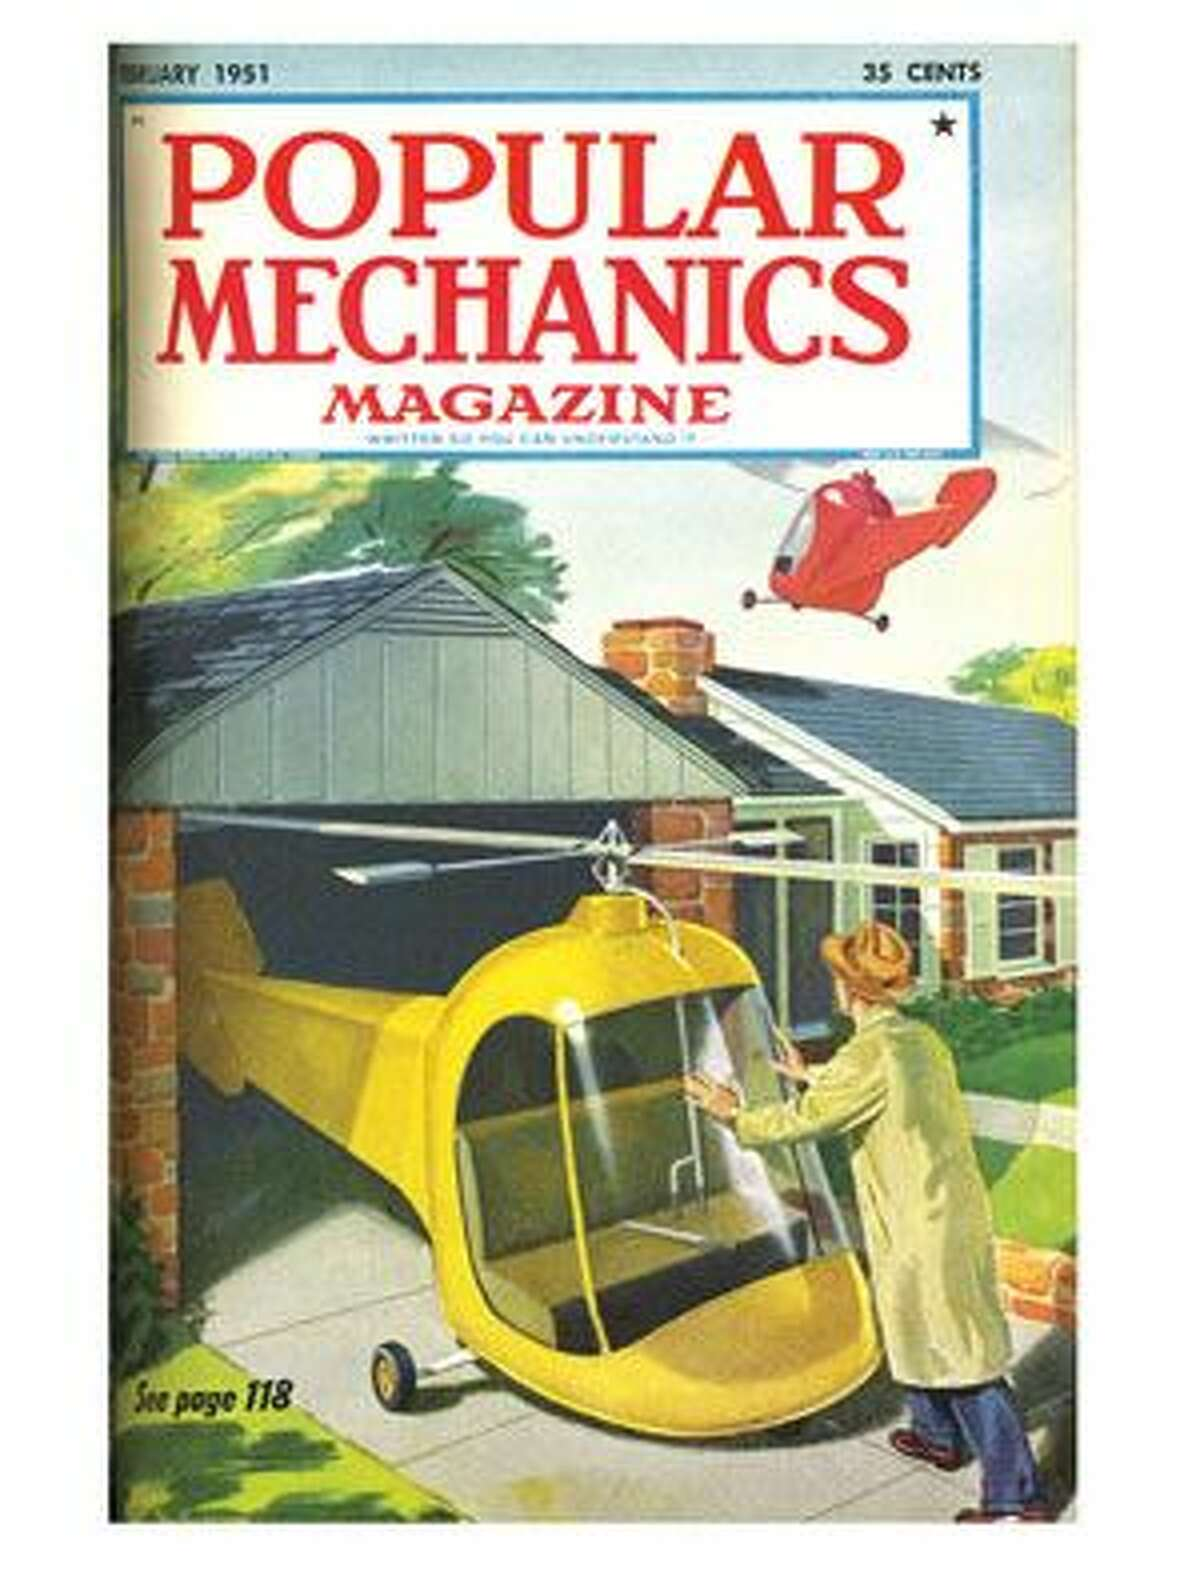 We would all have personal helicopters Imagine flying over the traffic in 610 instead of being stuck in it! That's what Popular Mechanics predicted in 1951: